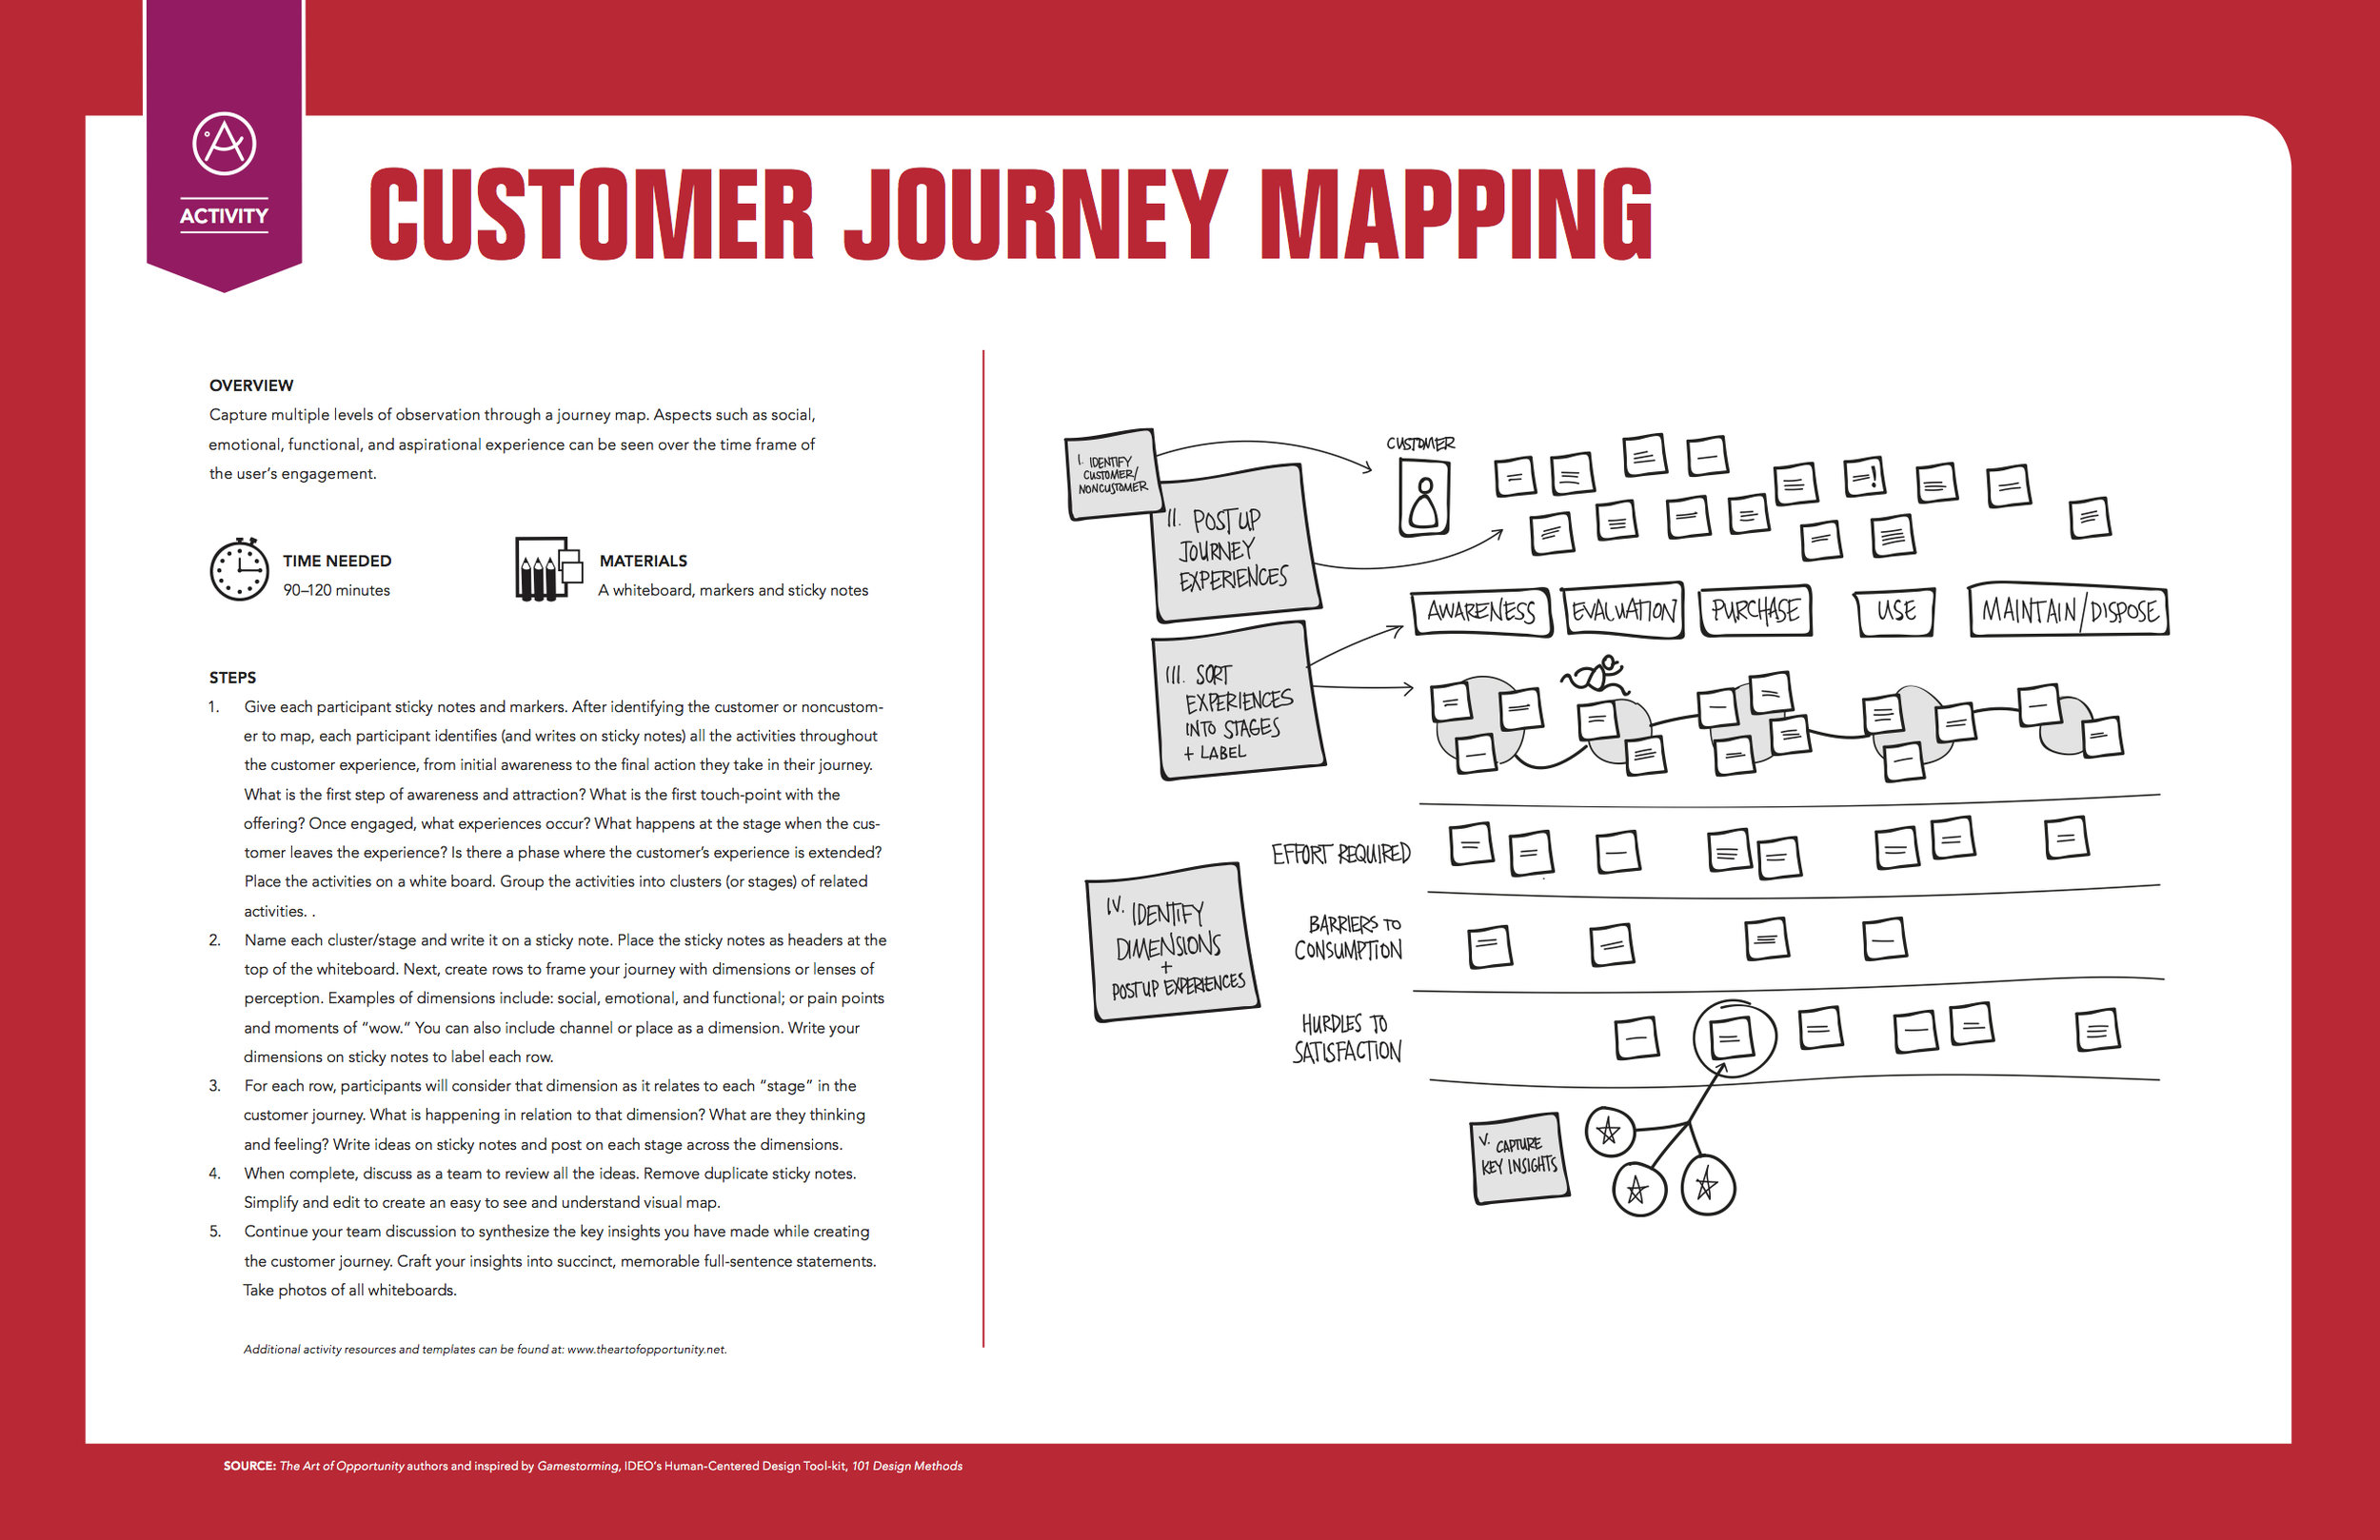 Activity: Customer Journey Mapping